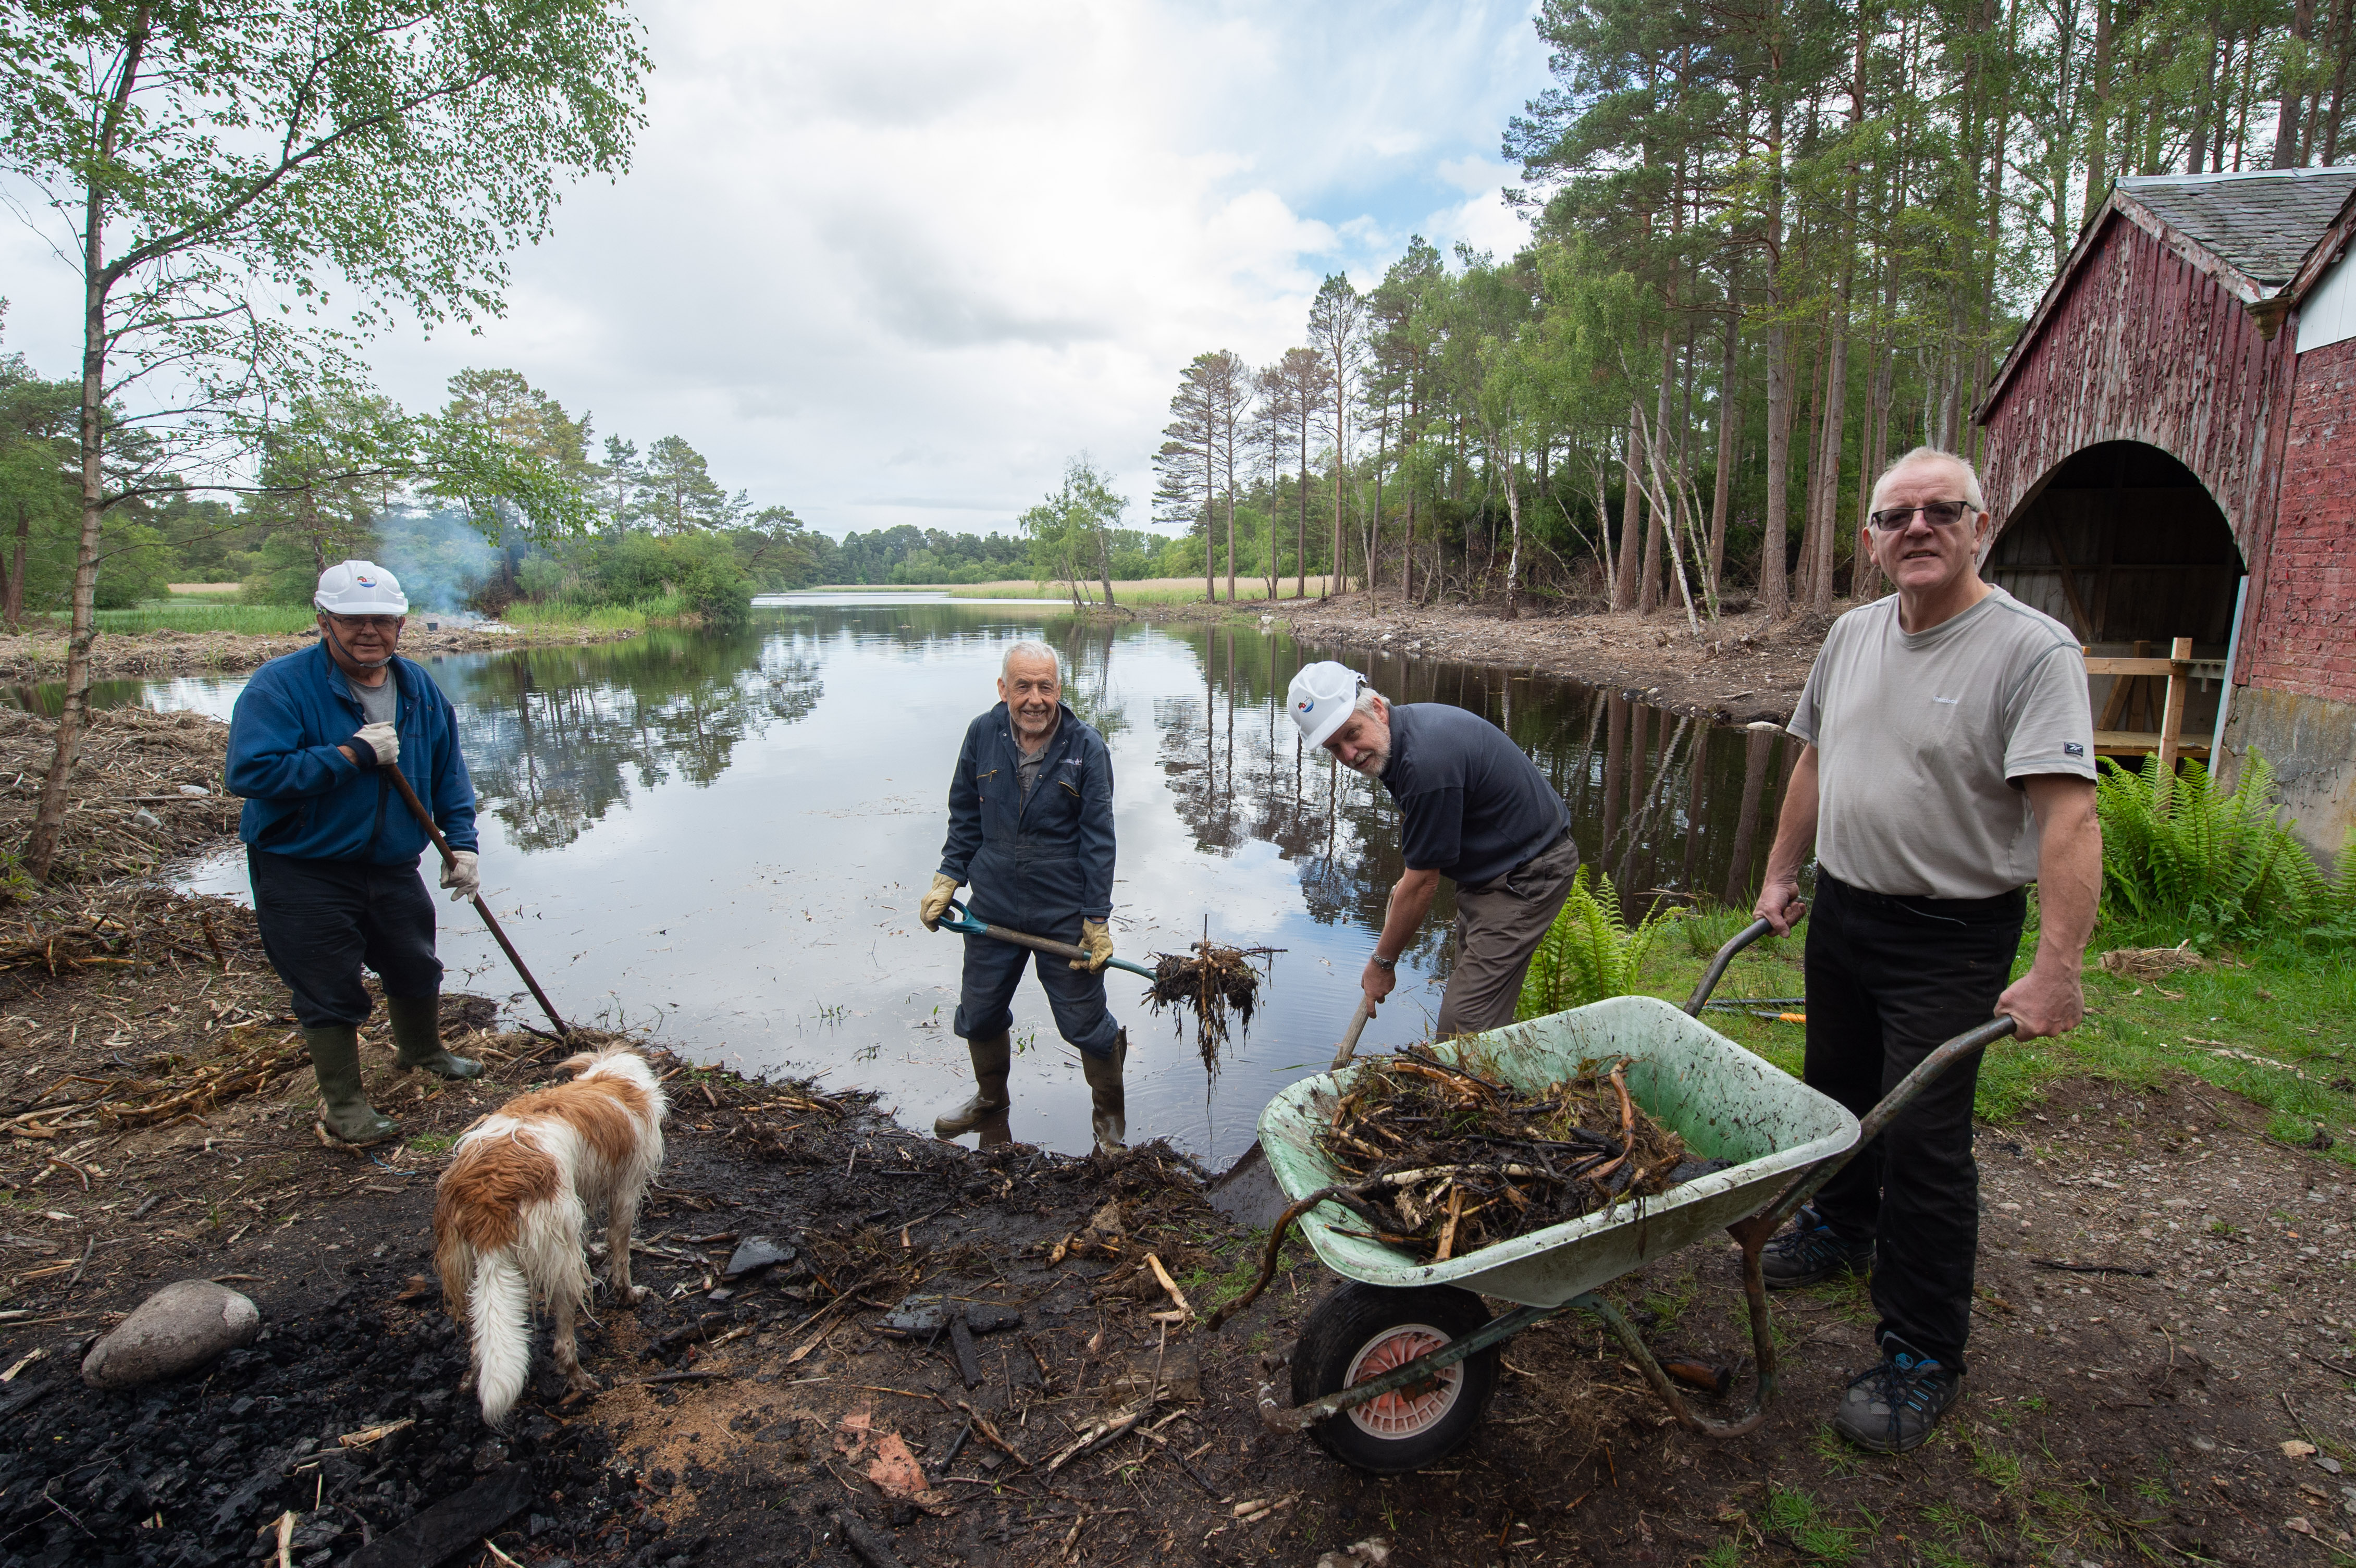 Support is growing to revamp an abandoned fishery and turn it into an education centre.